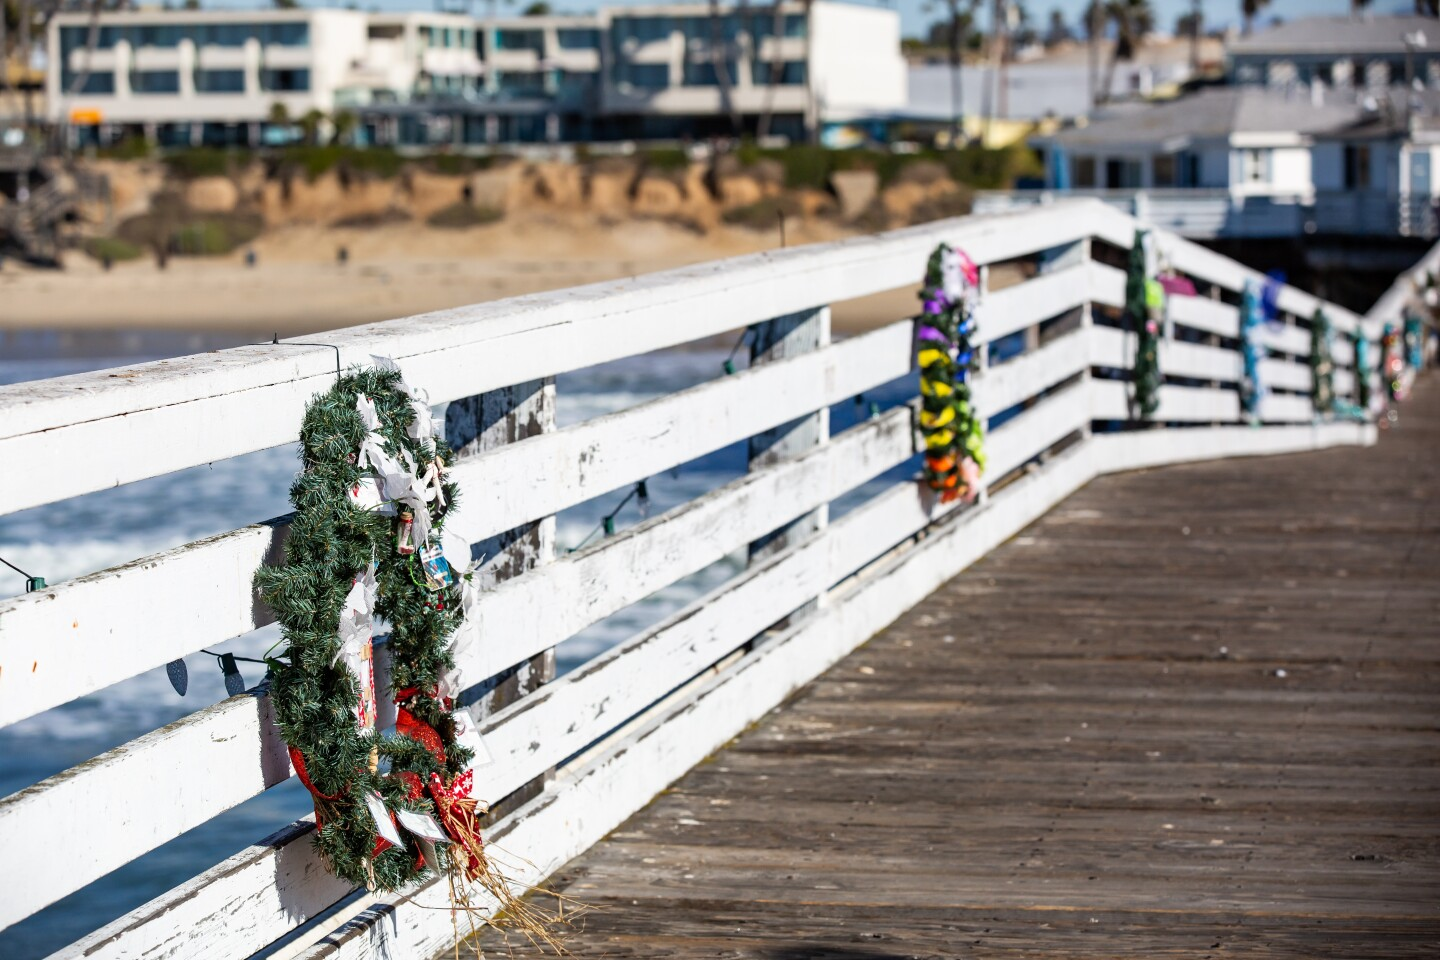 Christmas on Crystal Pier in Pacific Beach featured Christmas lights, wreaths and a large tree at the end of the pier.